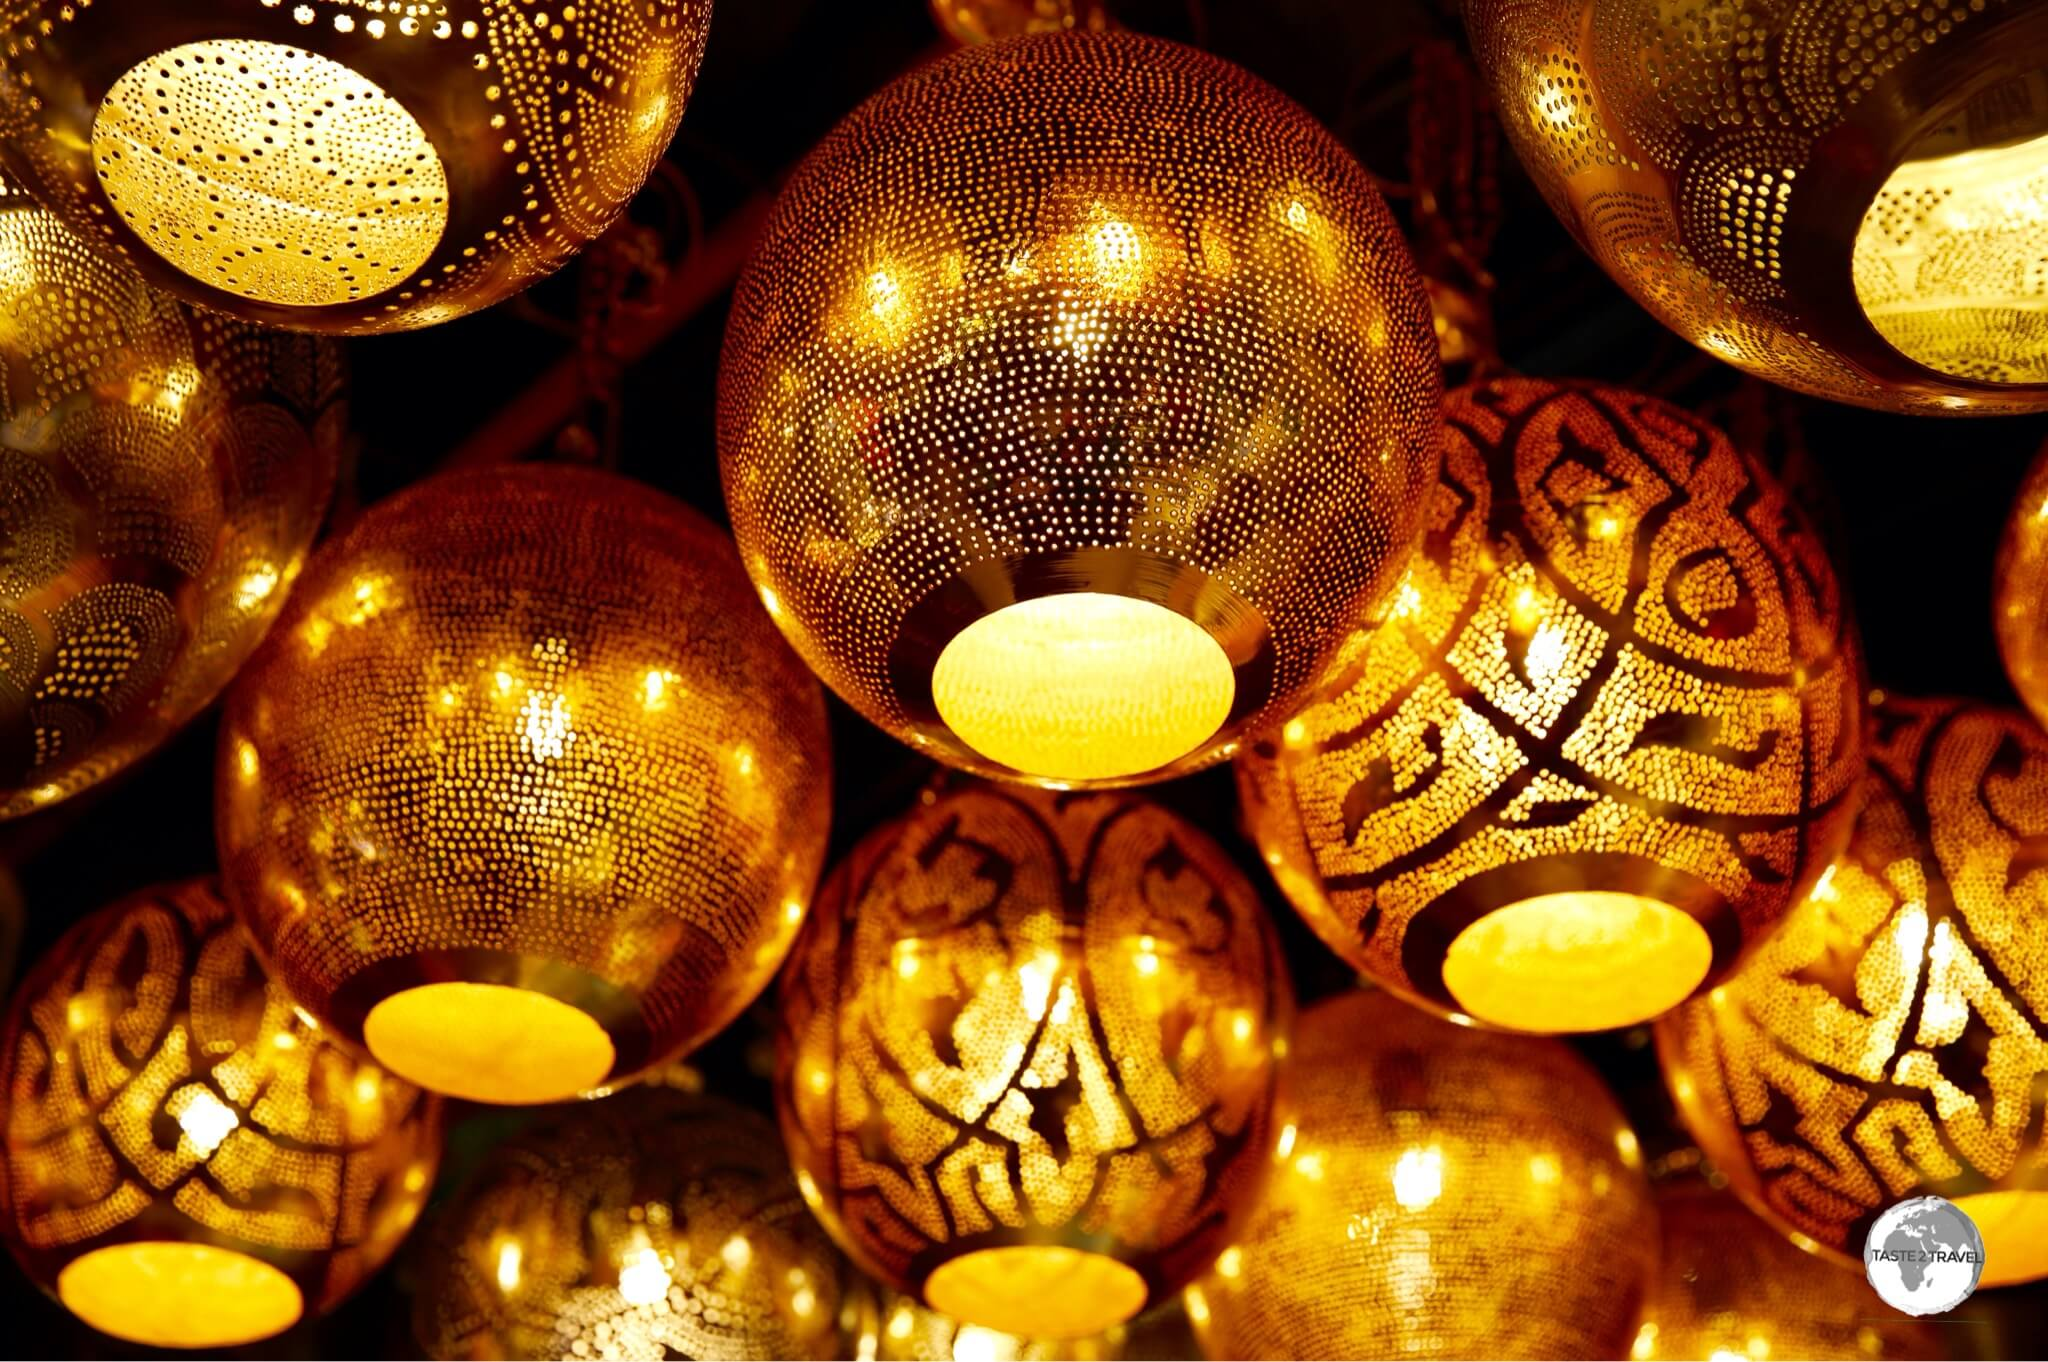 Golden lanterns at Manana souk.